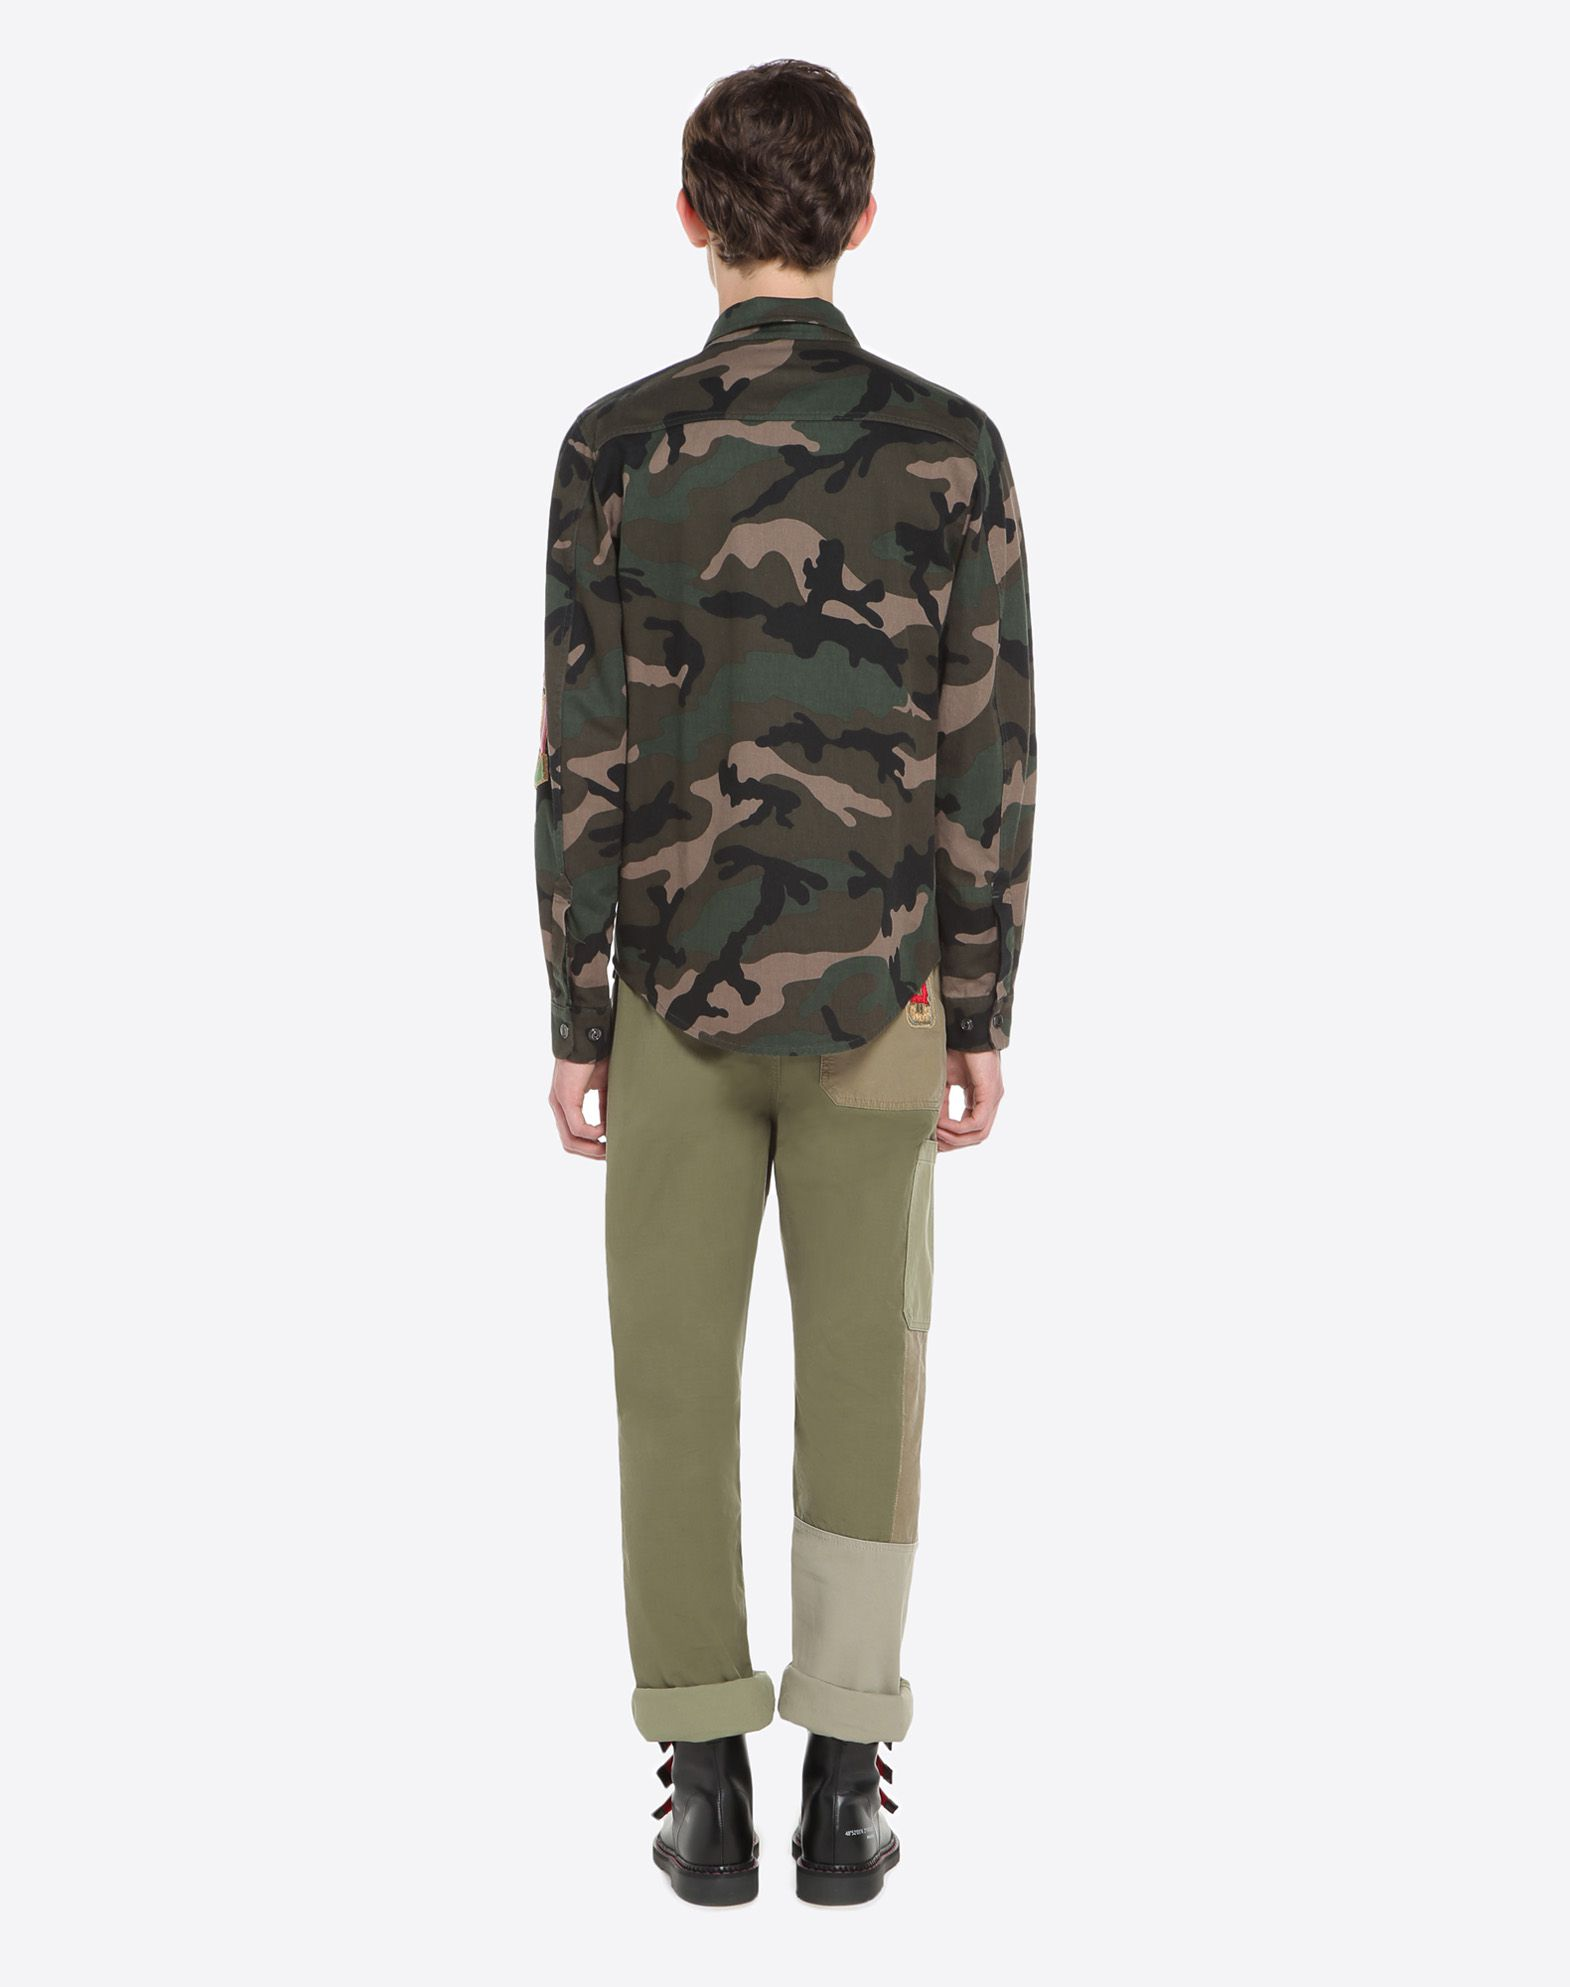 VALENTINO UOMO Outerwear shirt with military embroidery JACKET U e